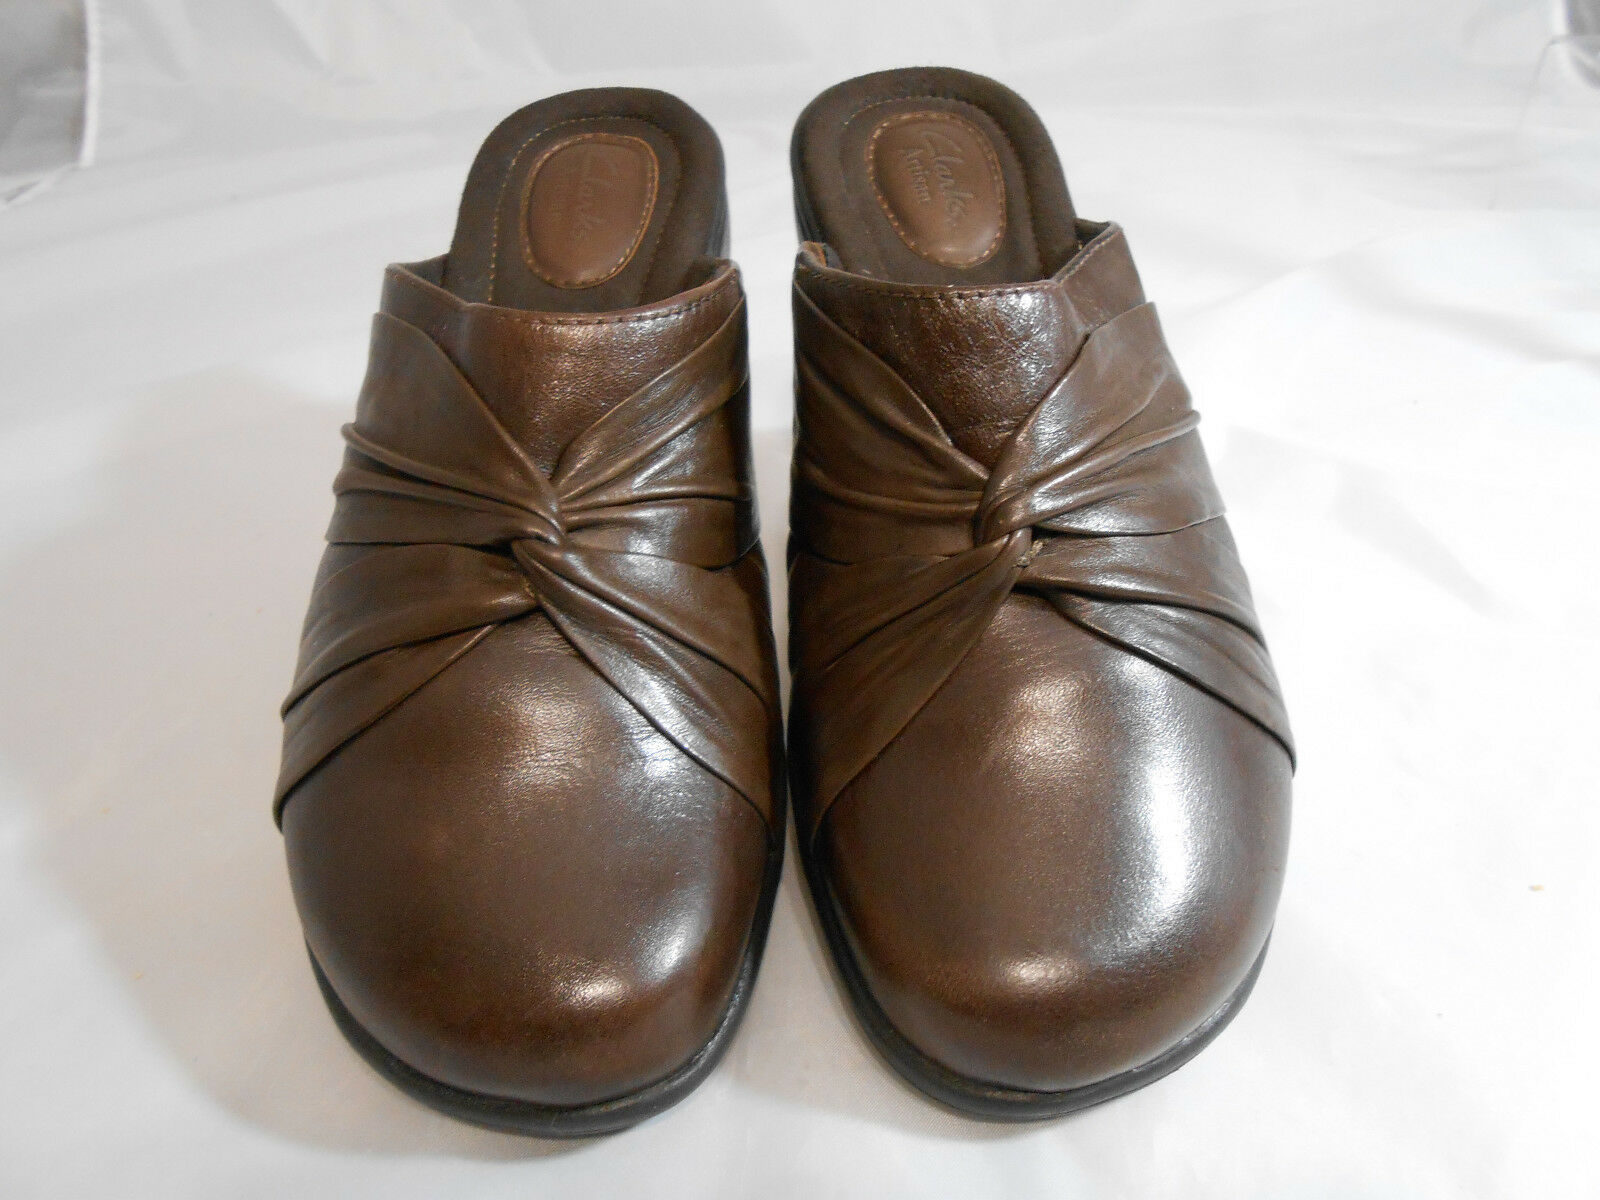 Clarks Artisan 31048 Brown Leather Wedge Mules M Shoes Womens Size 7.5 M Mules 7ac699